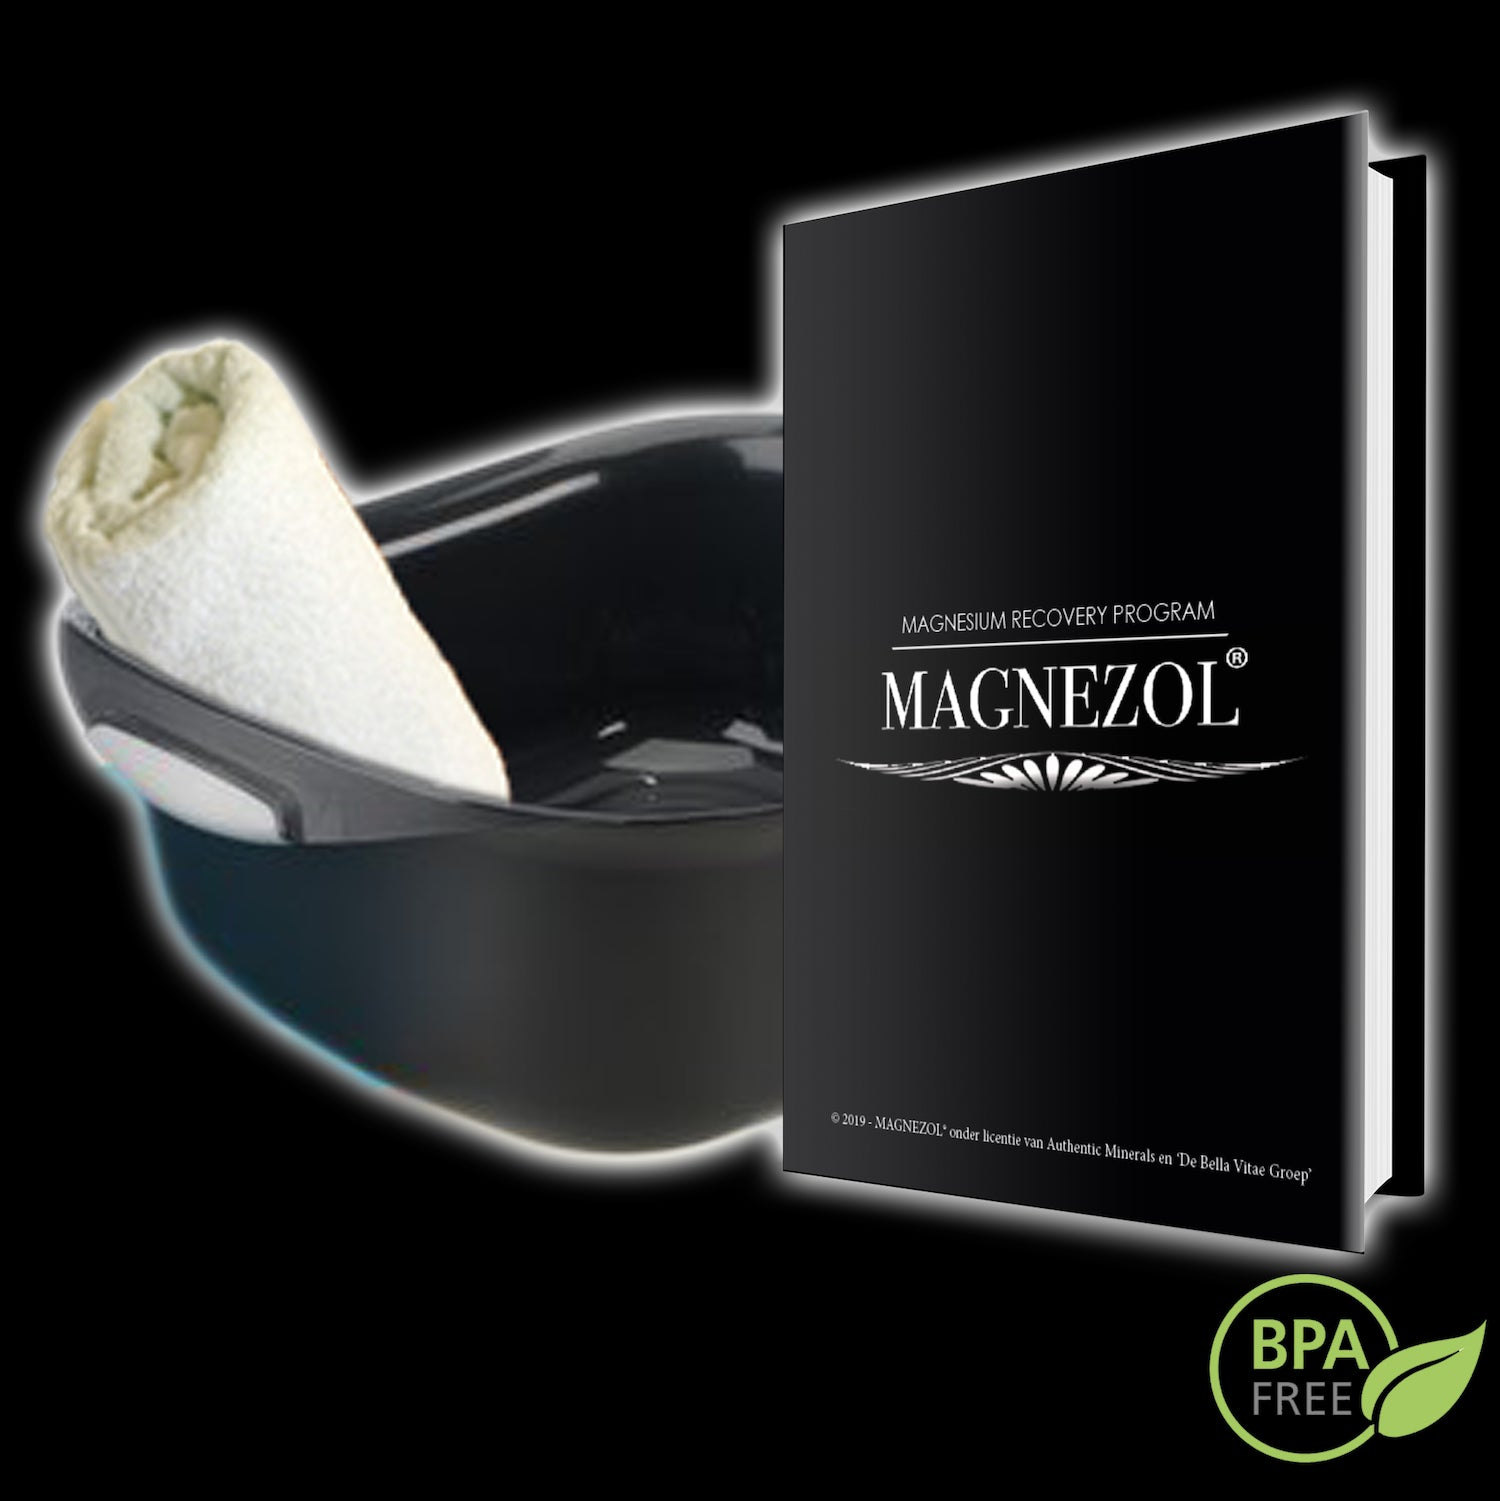 MAGNEZOL® Magnesium Recovery Compleet [Aanbieding] | MAGNEZOL® | www.magnezol.nl